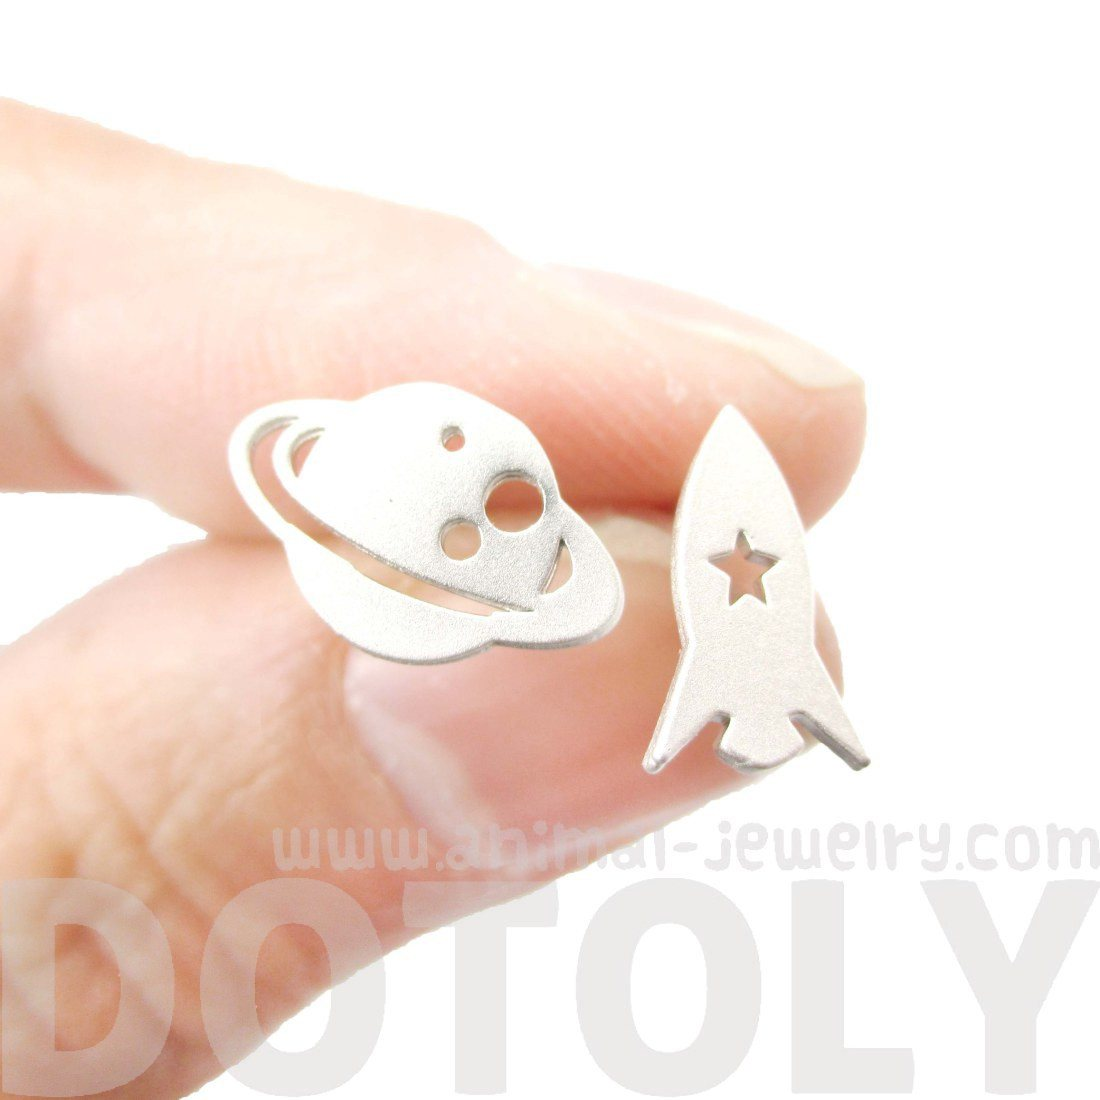 Saturn Spaceship Silhouette Shaped Space Theme Stud Earrings in Silver